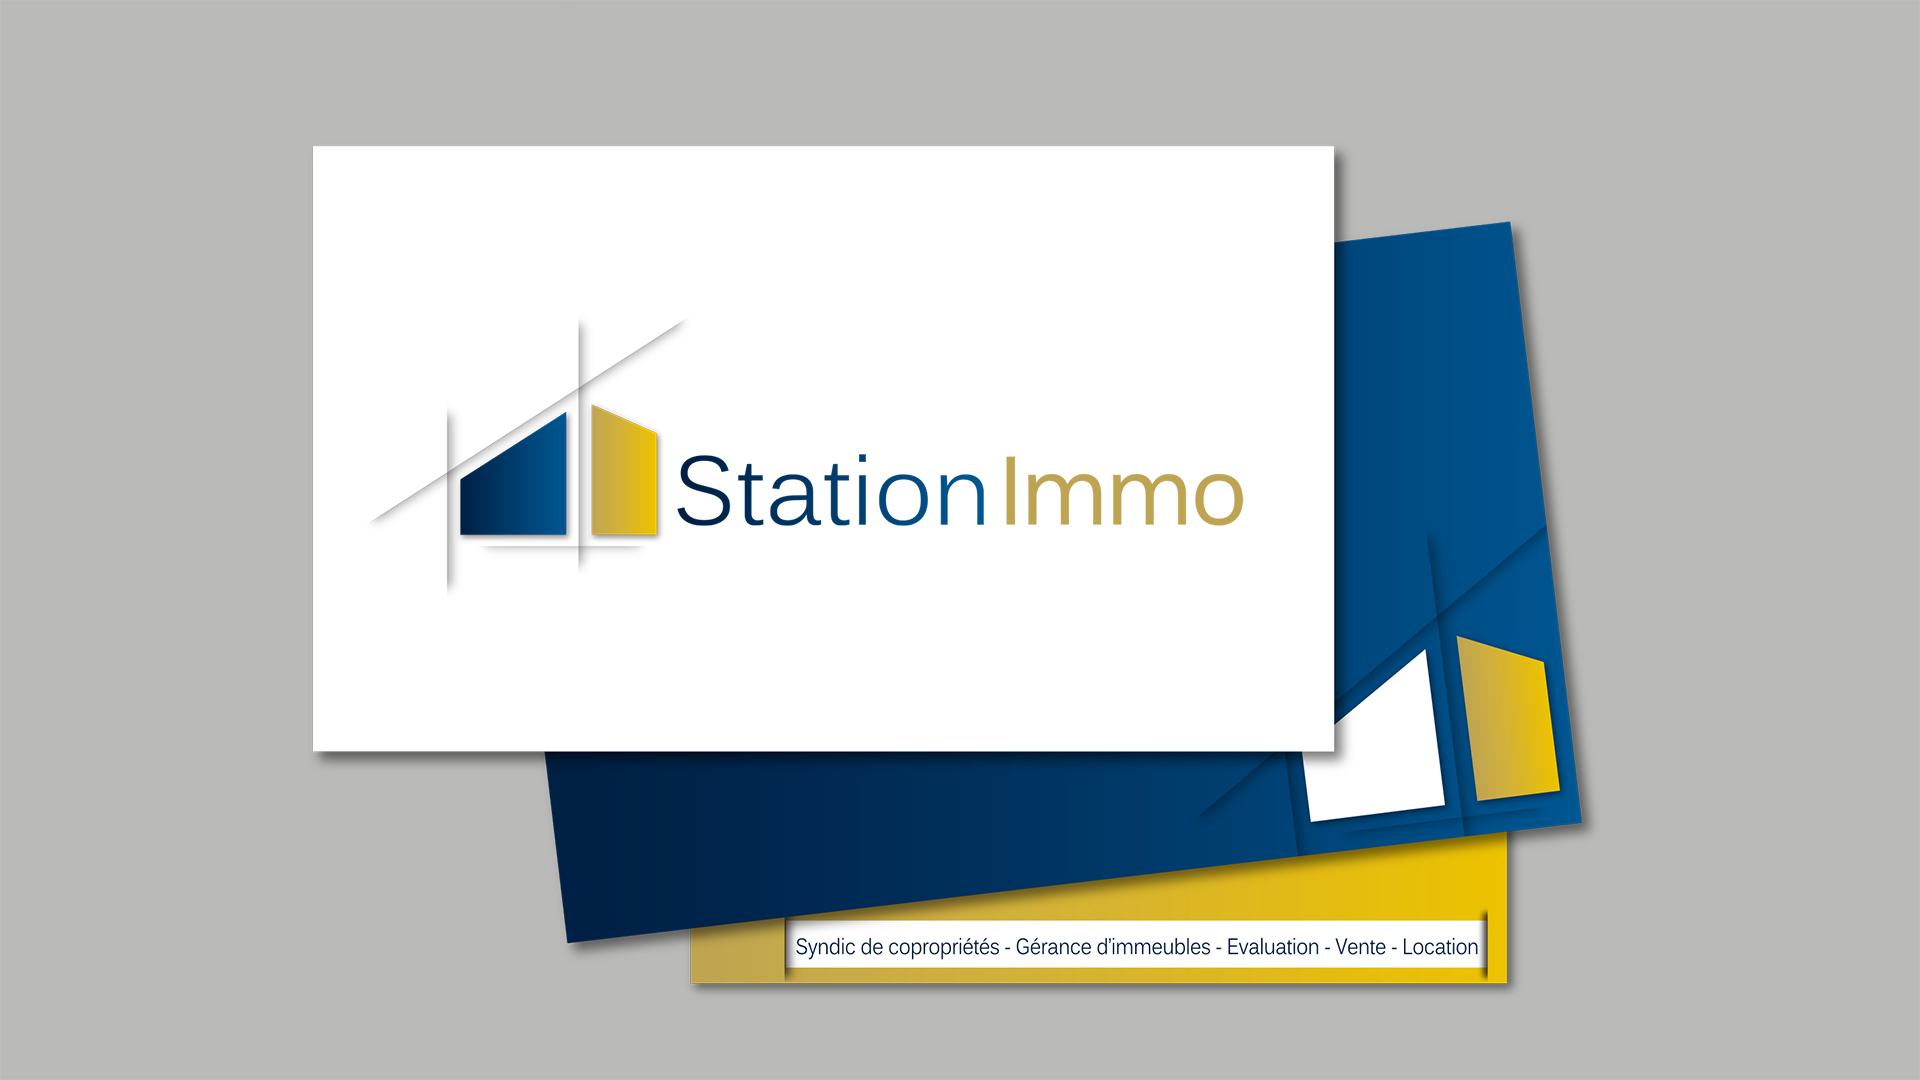 communication Agence immobilière - Immobilier : Refonte logo Station immo - agence immobilière